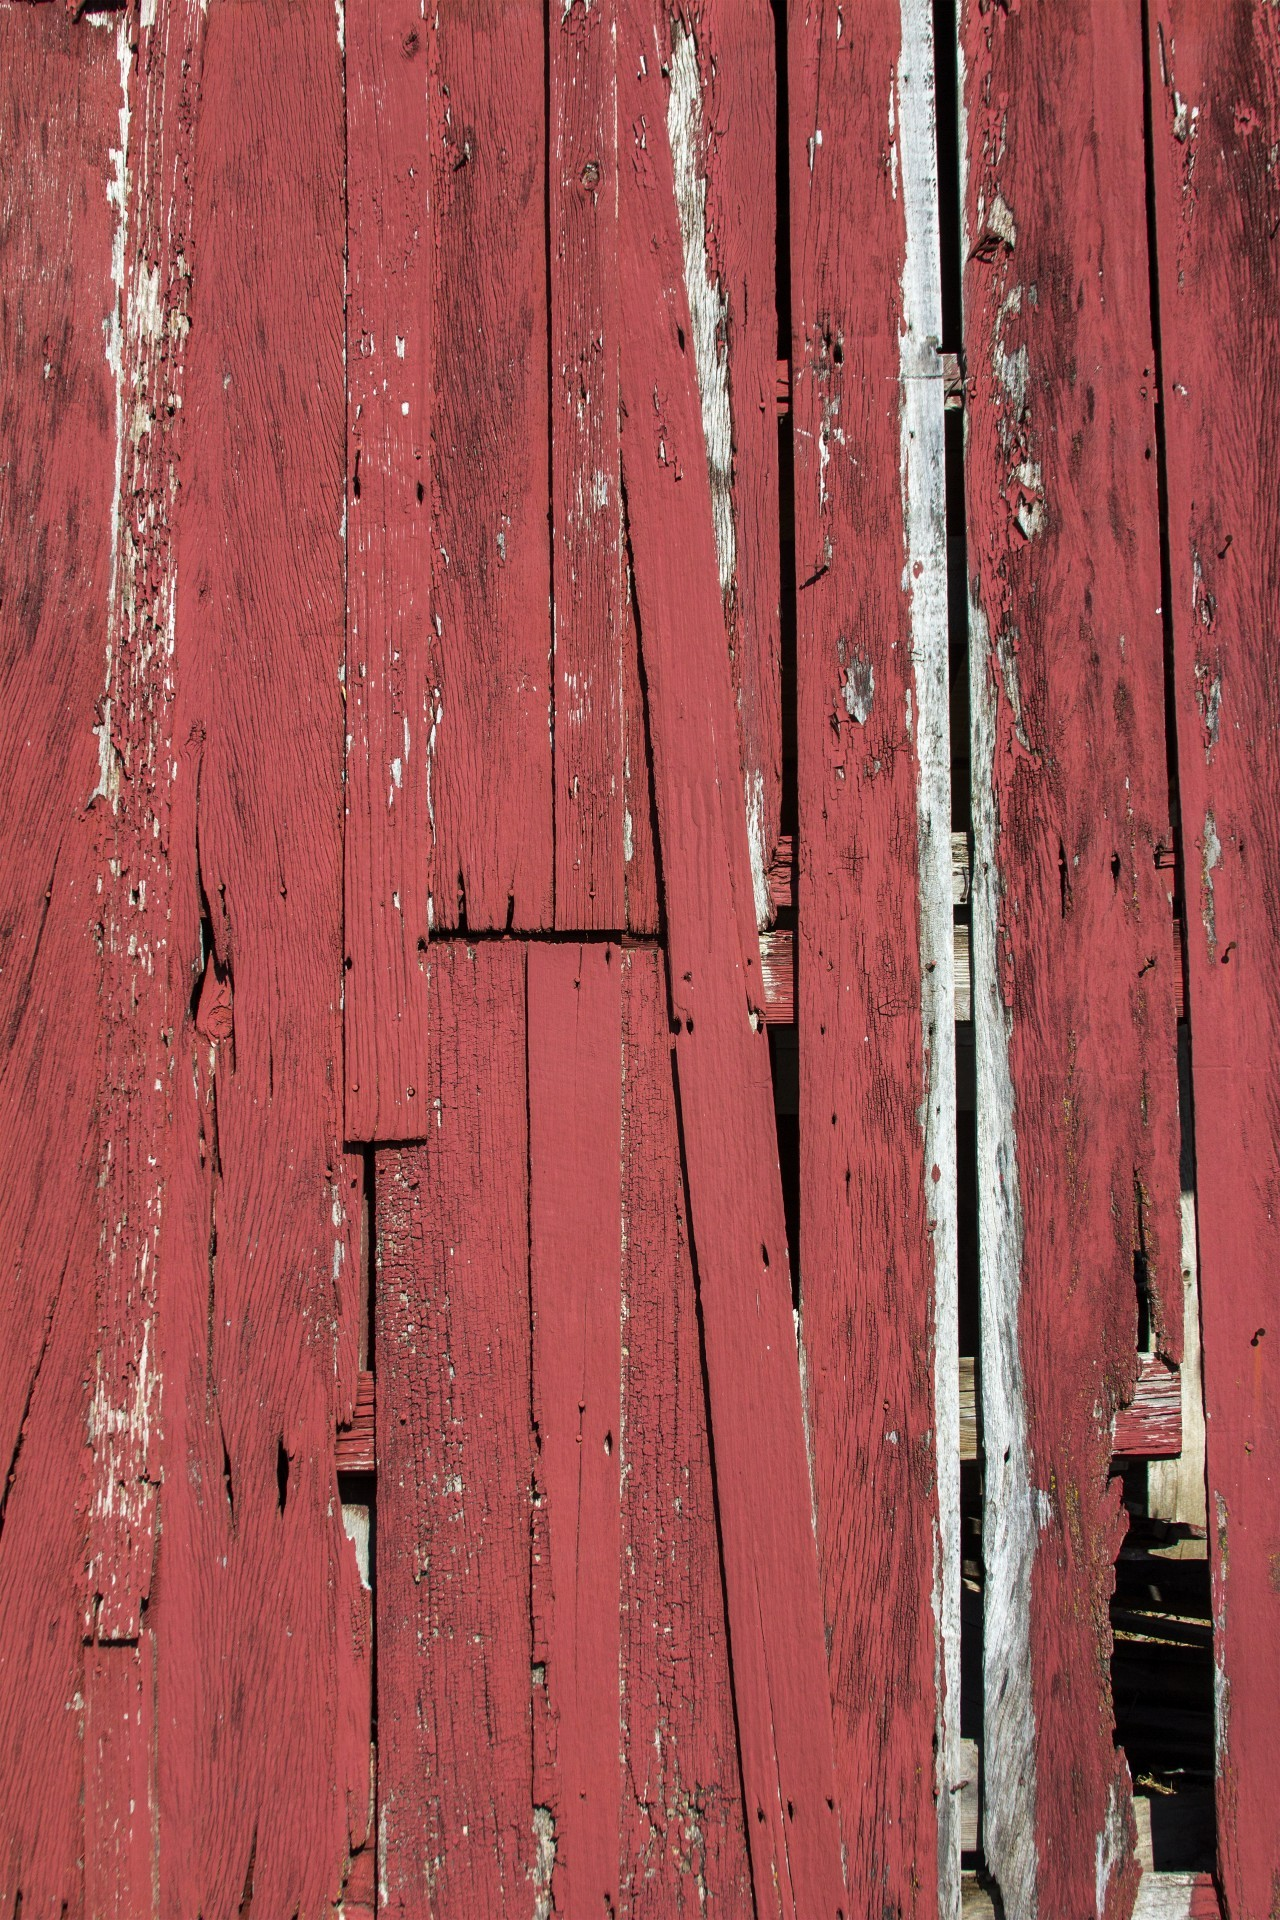 Barn Wood Background 183 ① Download Free Awesome Backgrounds